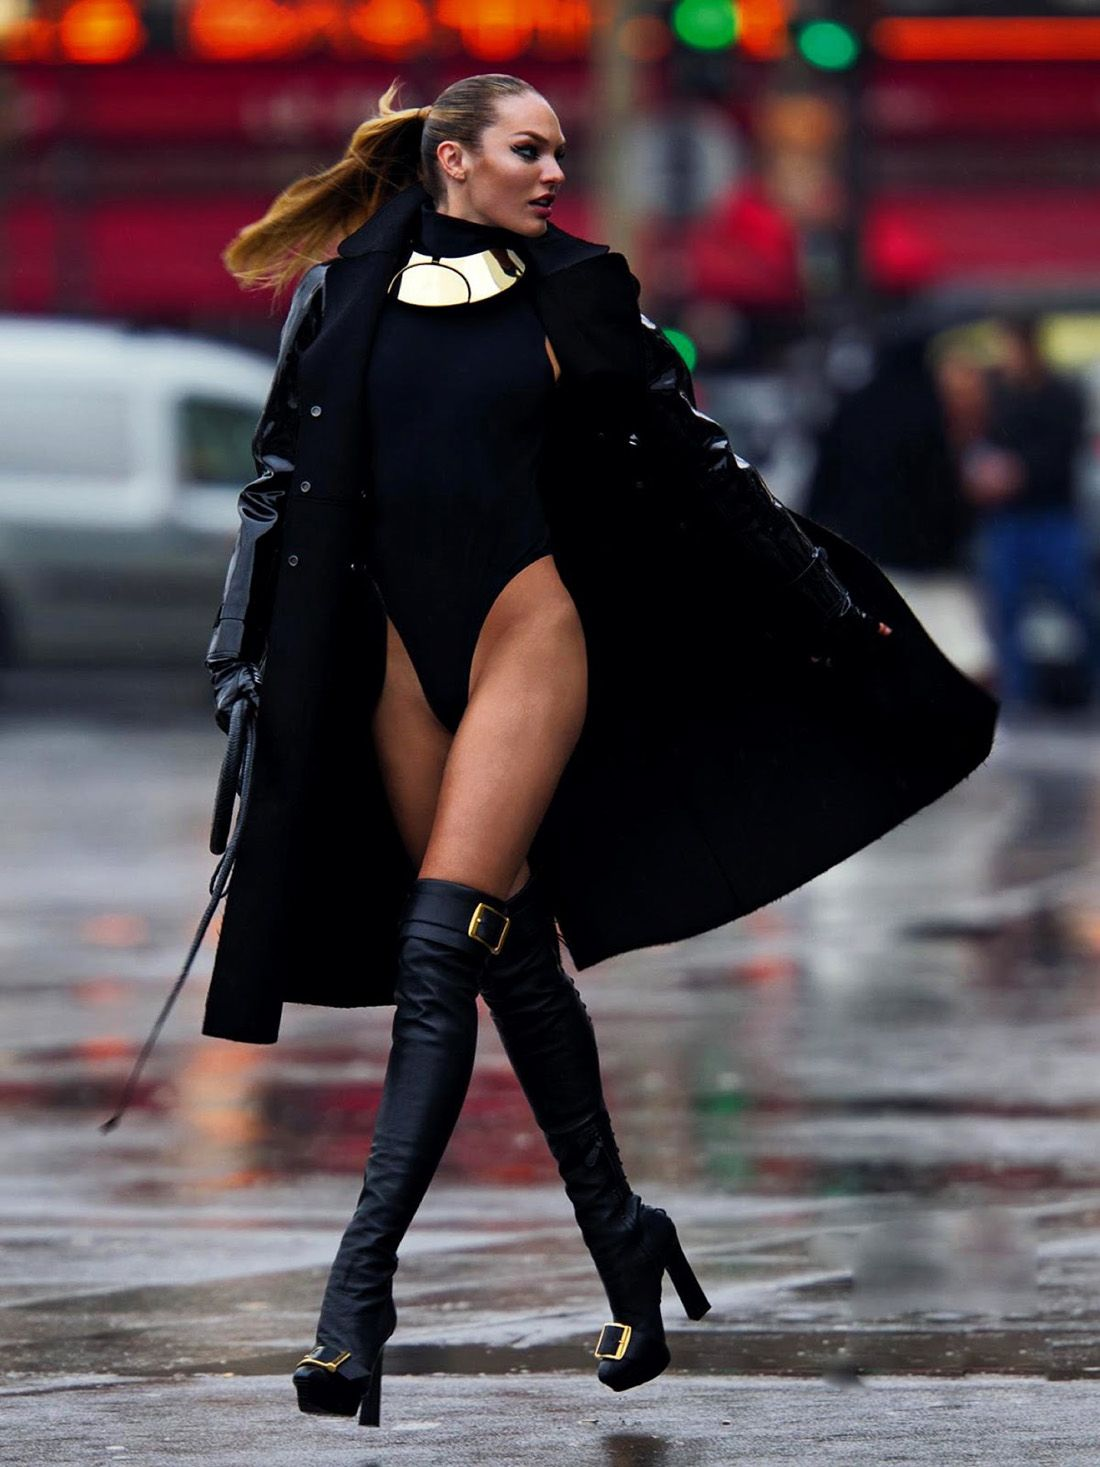 Womens leather gloves au - Candice Swanepoel For Aussie Vogue Valentino Coat Agnelle Leather Gloves Mcqueen Leather Boots